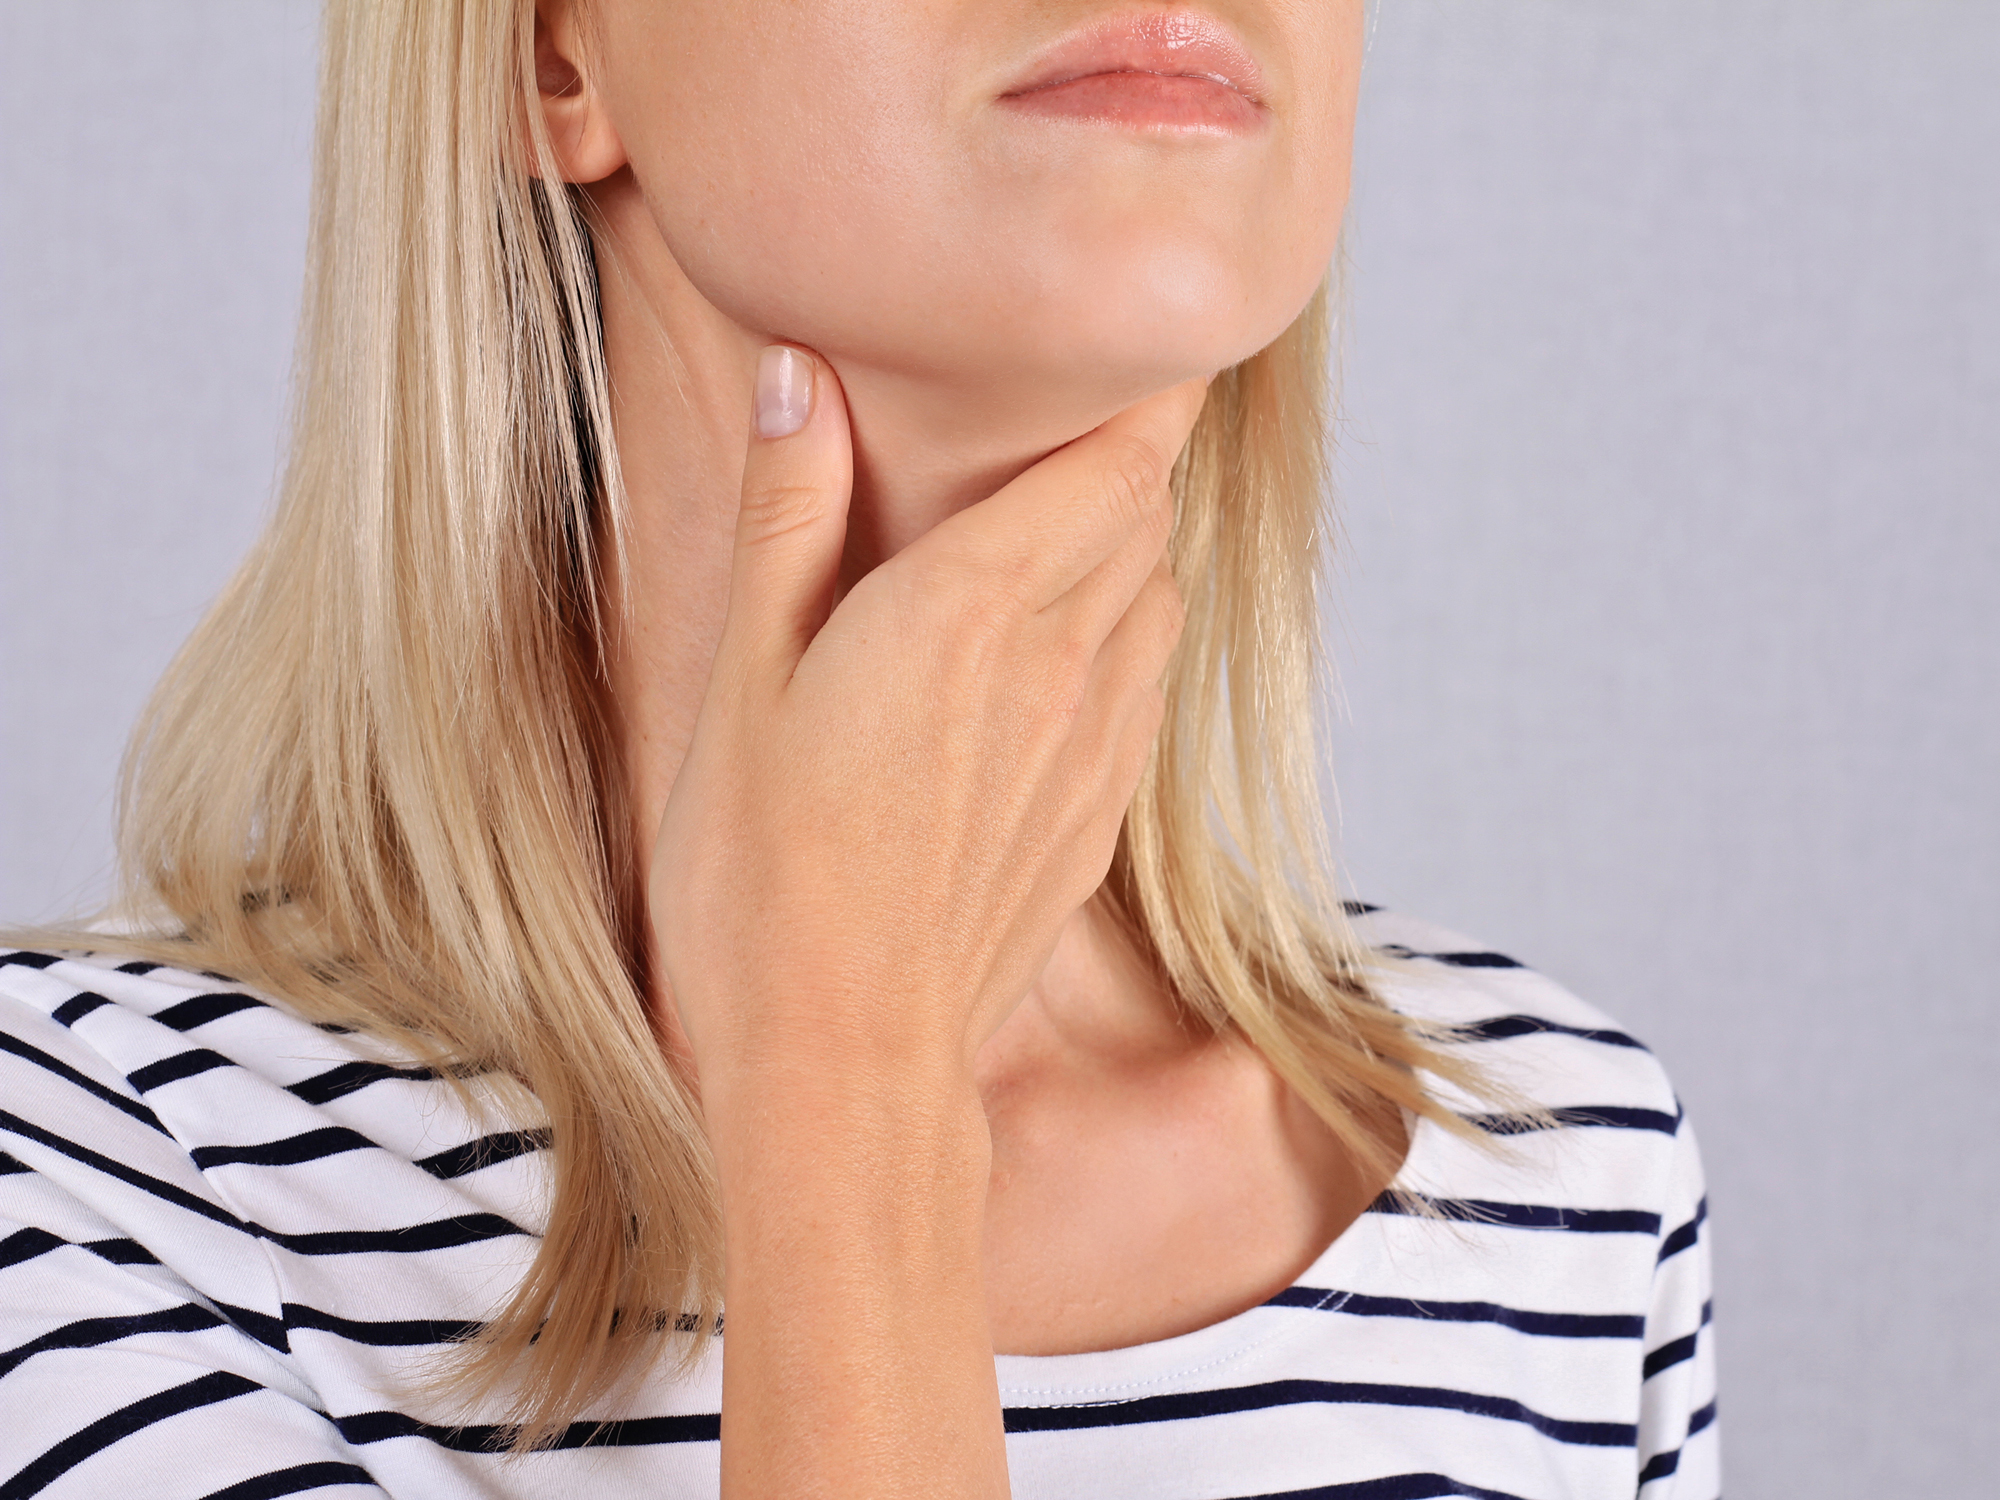 Iodine shortage to blame for your thyroid woes?